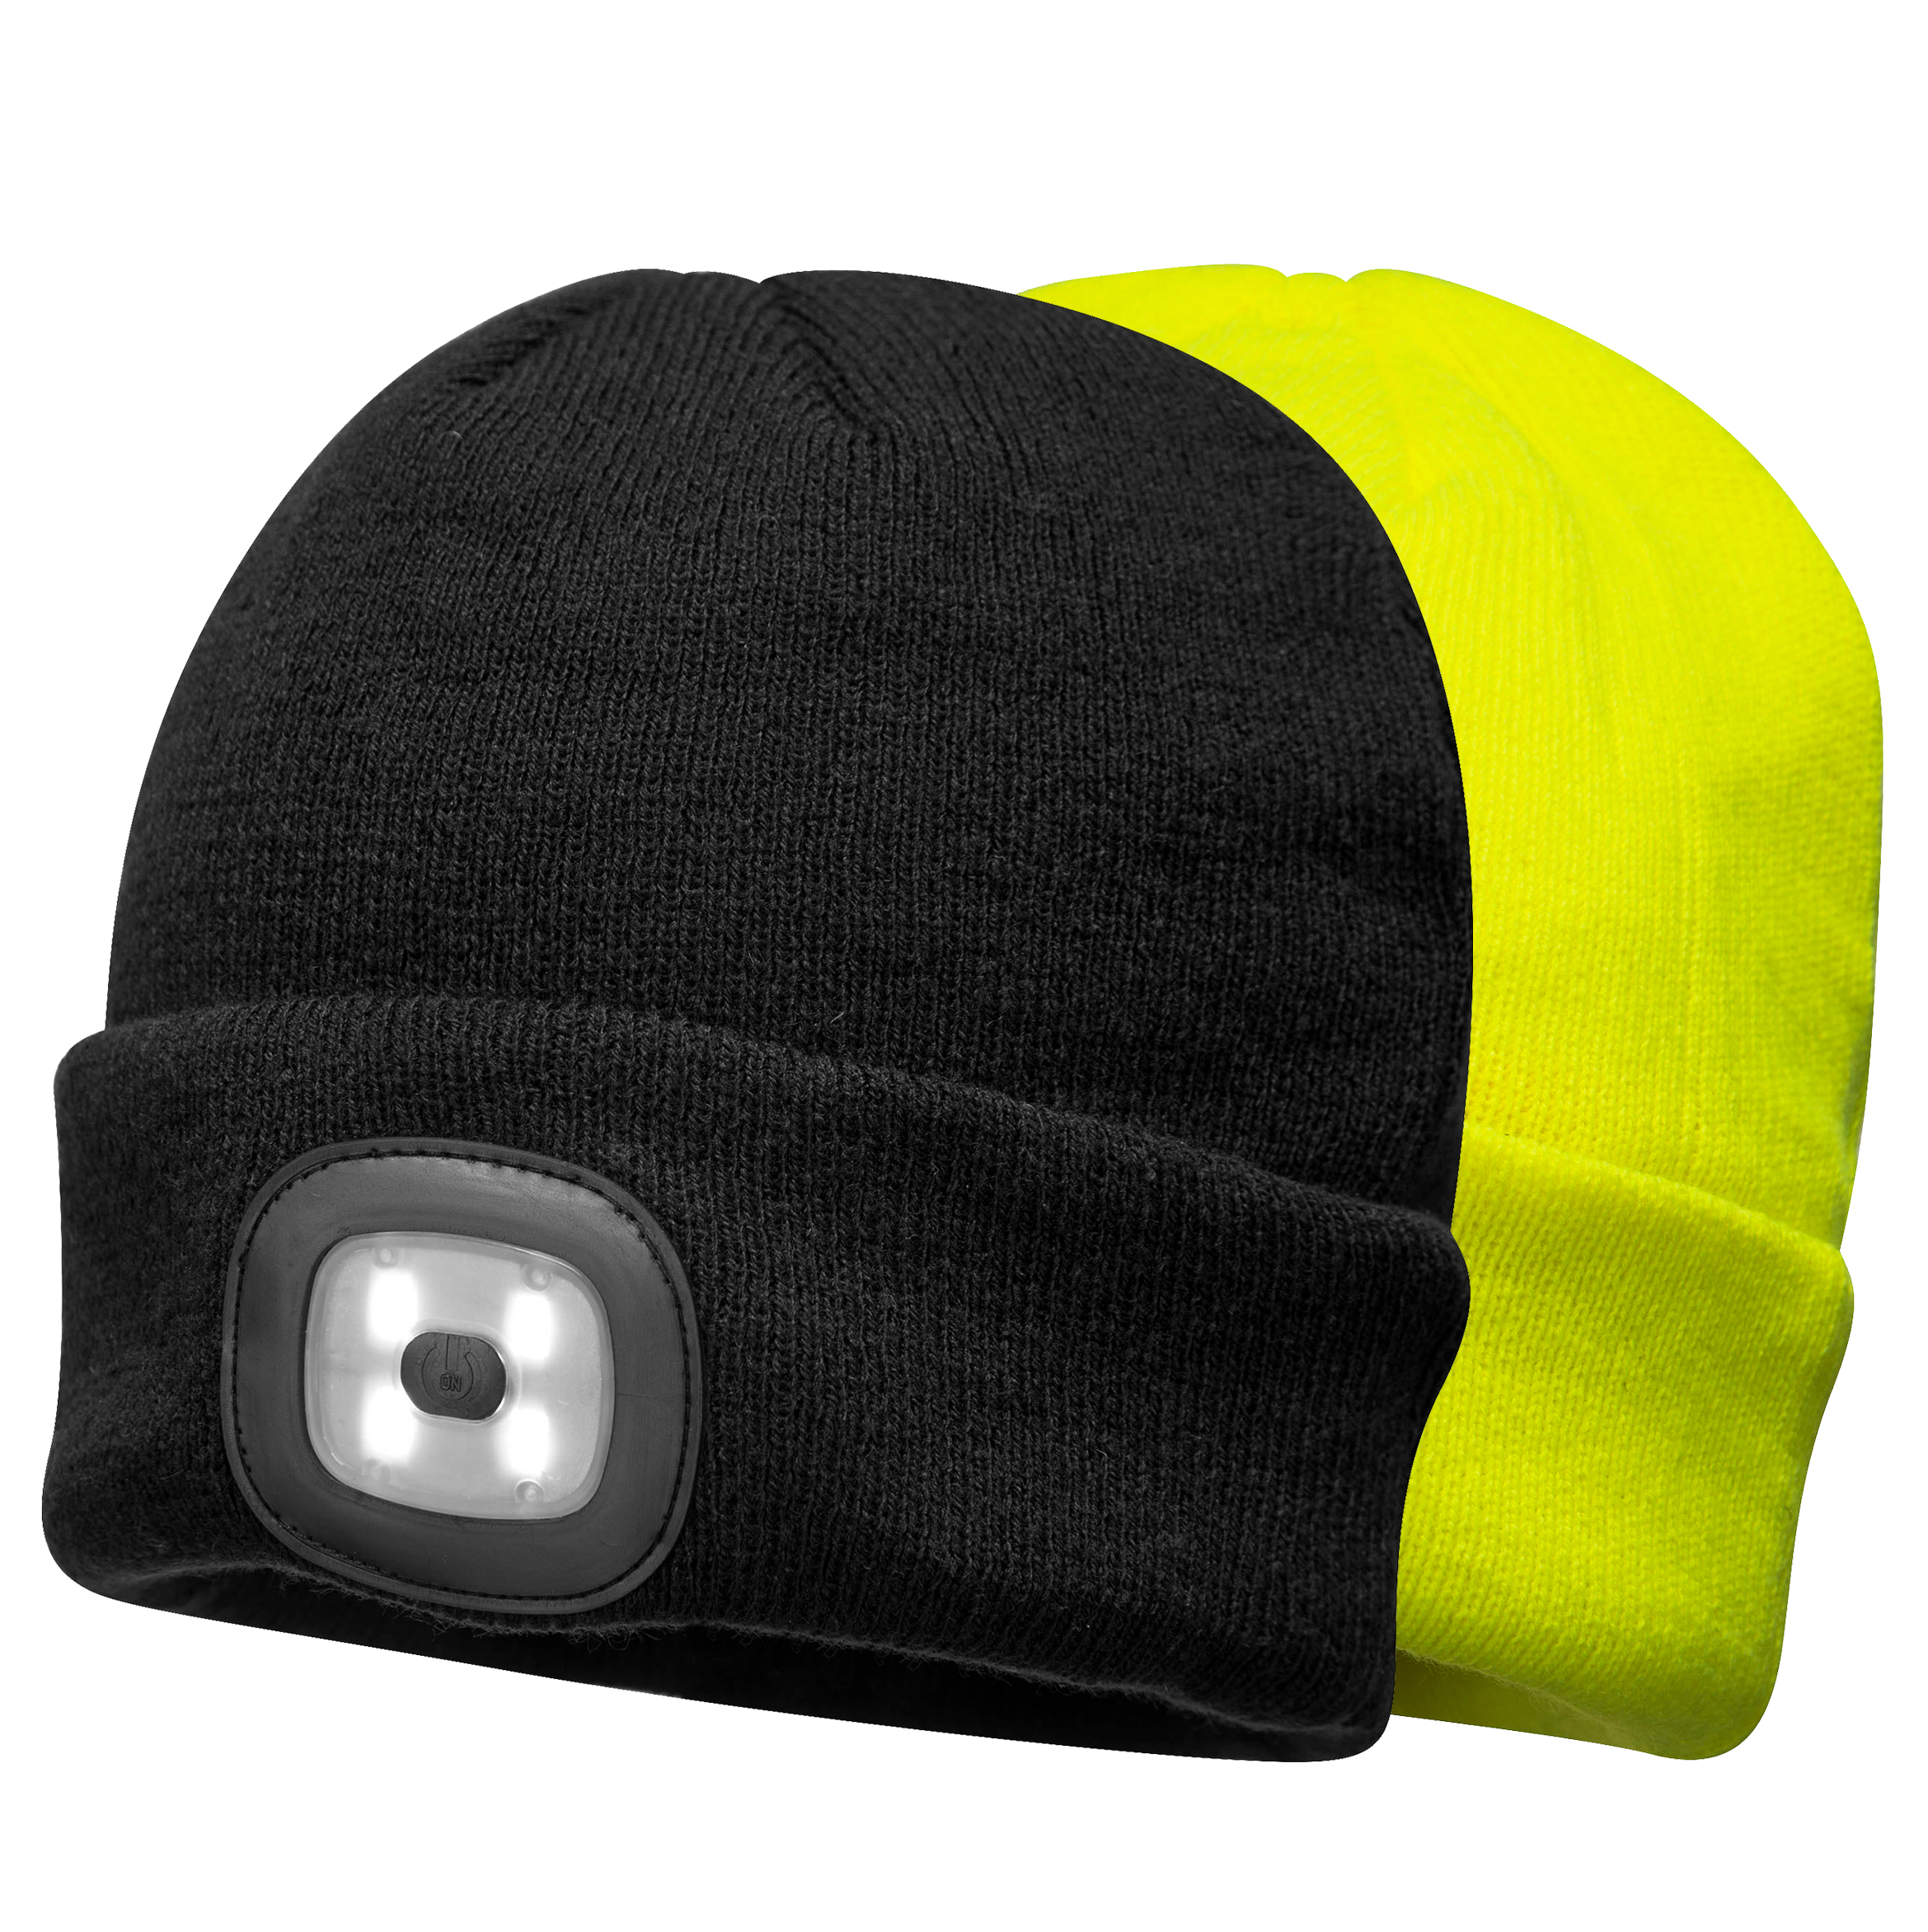 f7e17ecb Portwest B029 Rechargeable USB LED Winter Cap, yellow and black